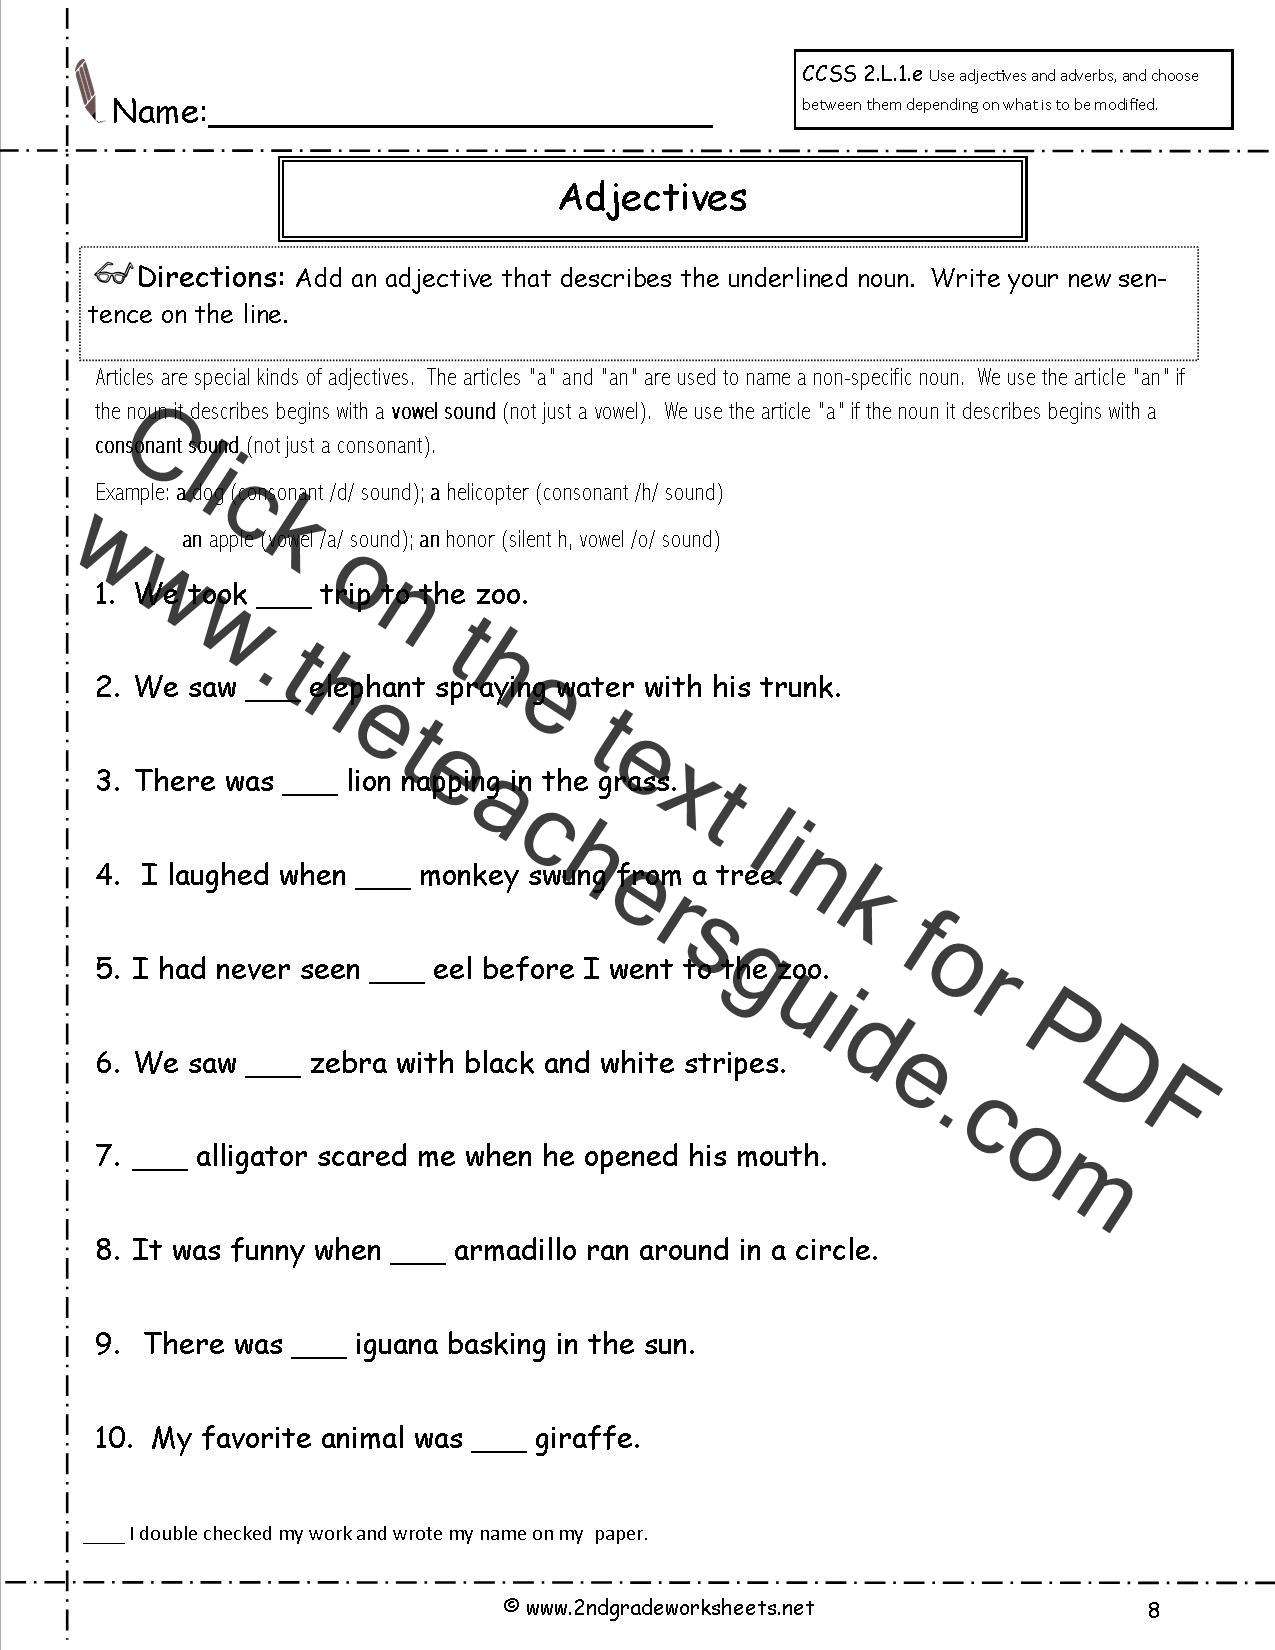 Worksheet Free Printable English Grammar Worksheets For Grade 2 free languagegrammar worksheets and printouts adjectives worksheets